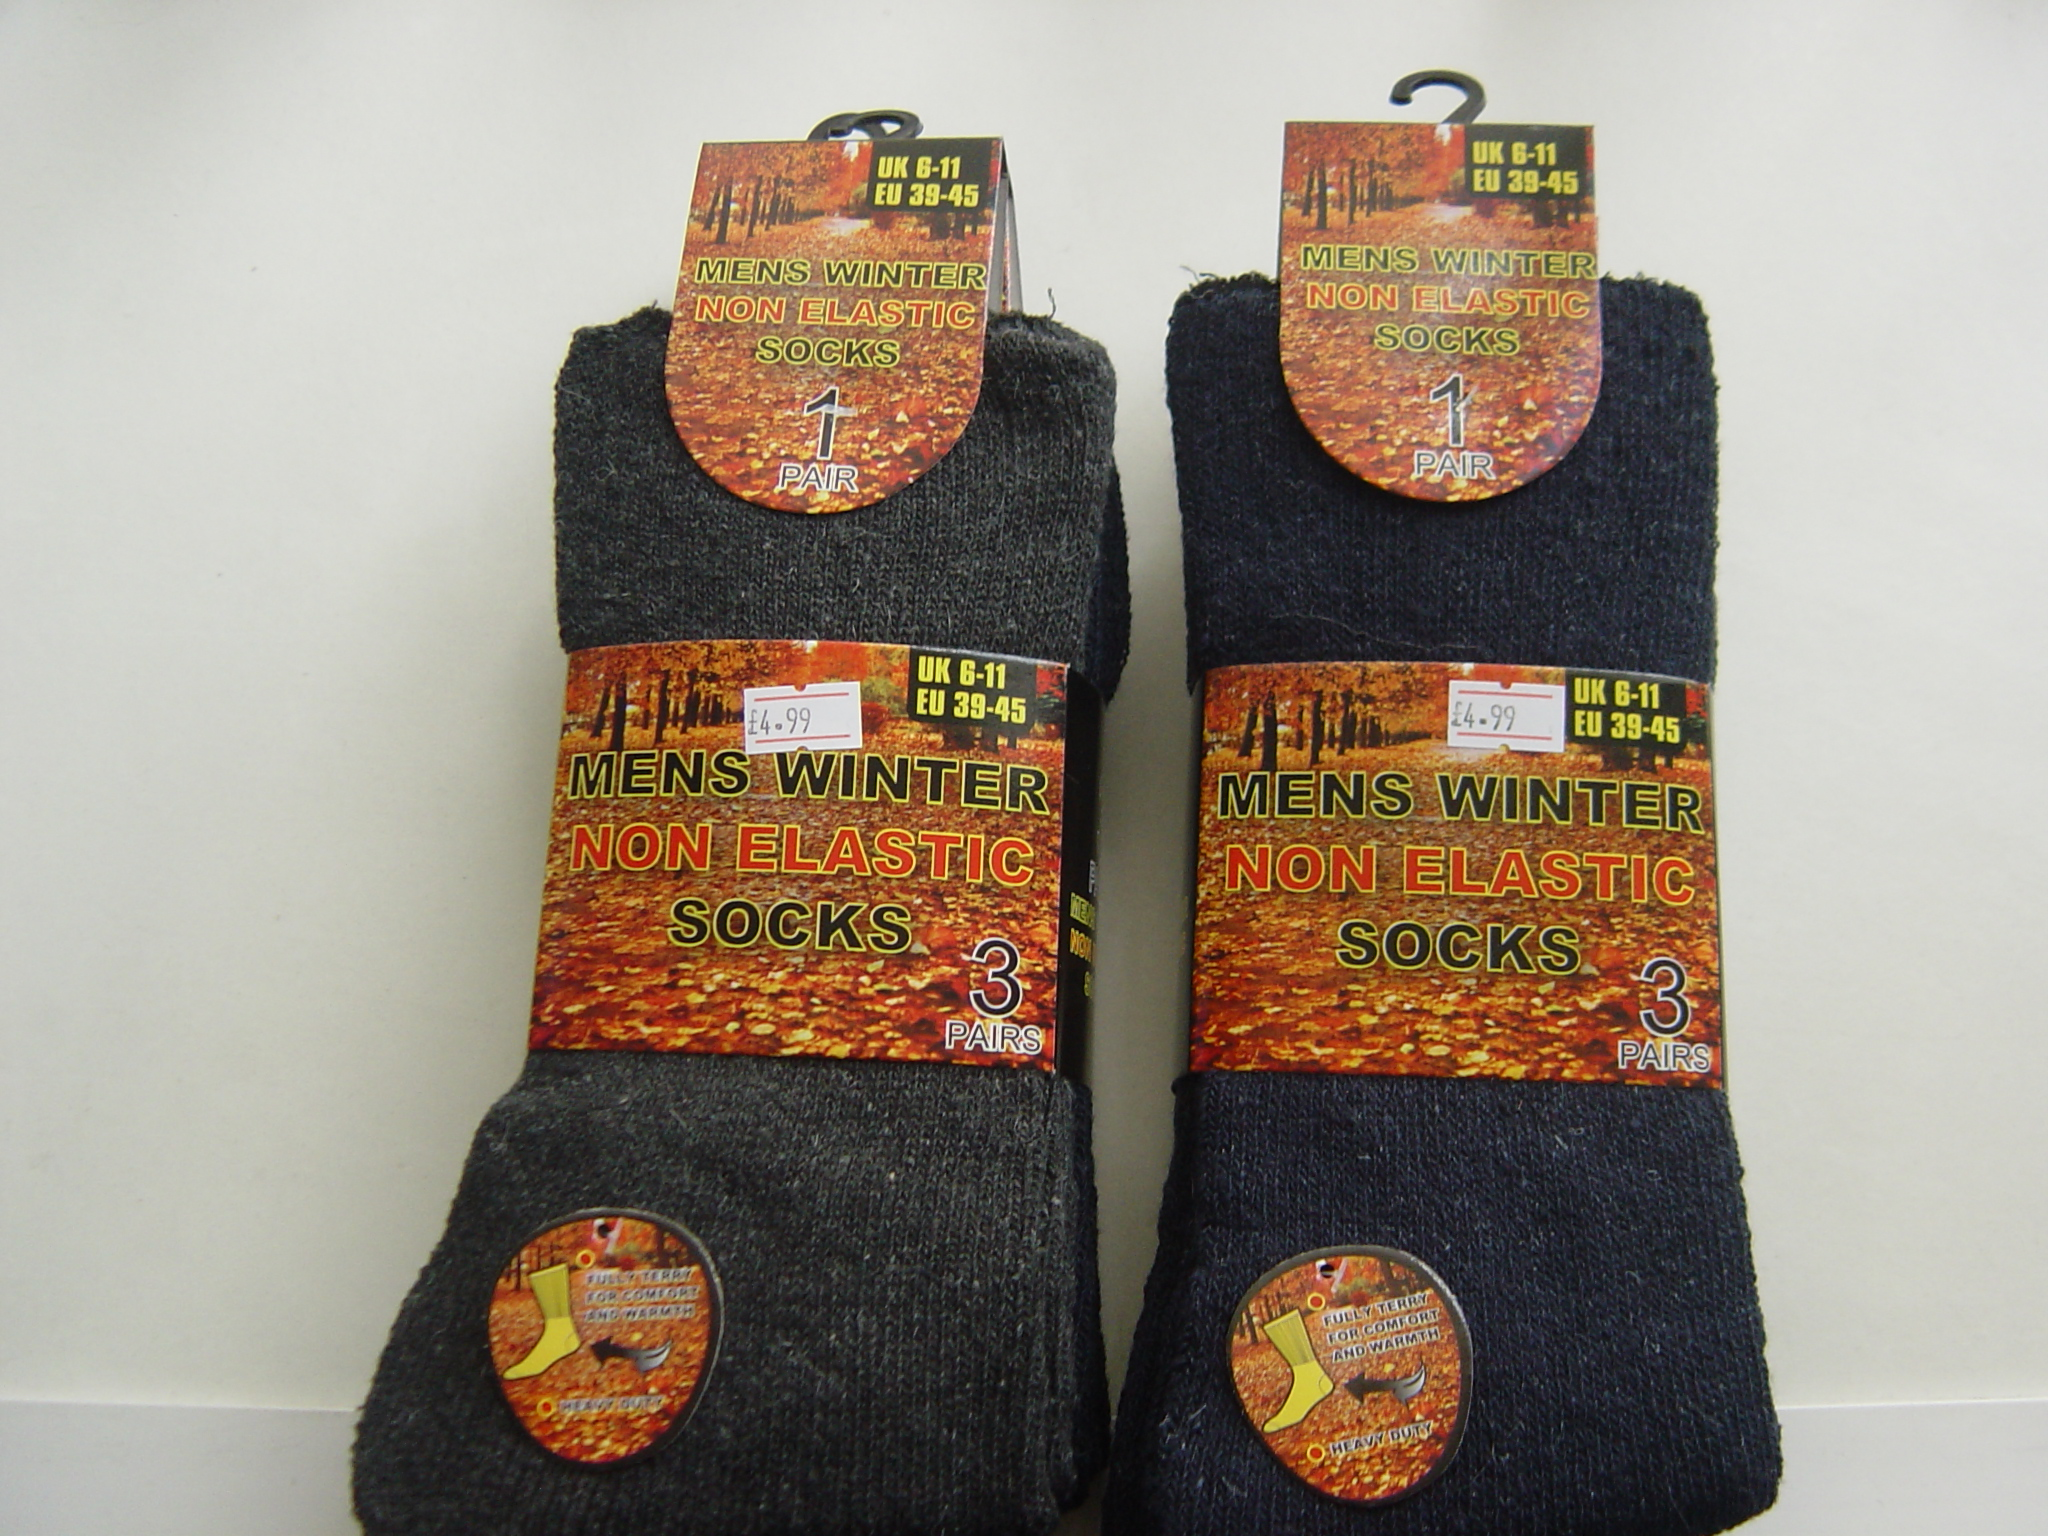 MENS WINTER NON-ELASTIC SOCKS - 3 PAIR PACK